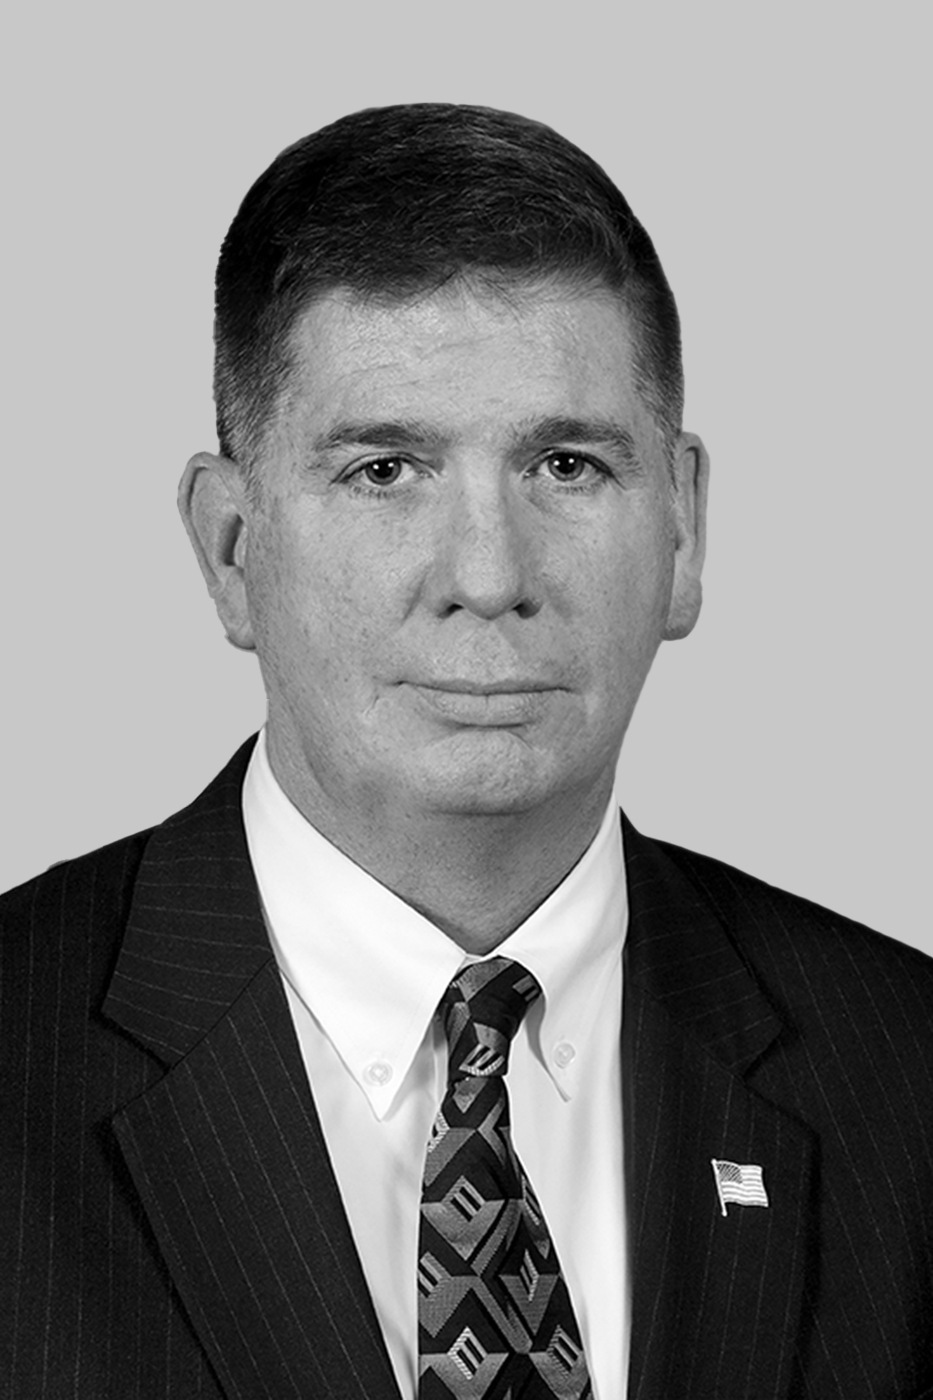 The FBI Wall of Honor remembers Special Agent in Charge David J. LeValley, who died on May 26, 2018 from an illness incurred as a result of his response to the 9/11 attacks in New York.